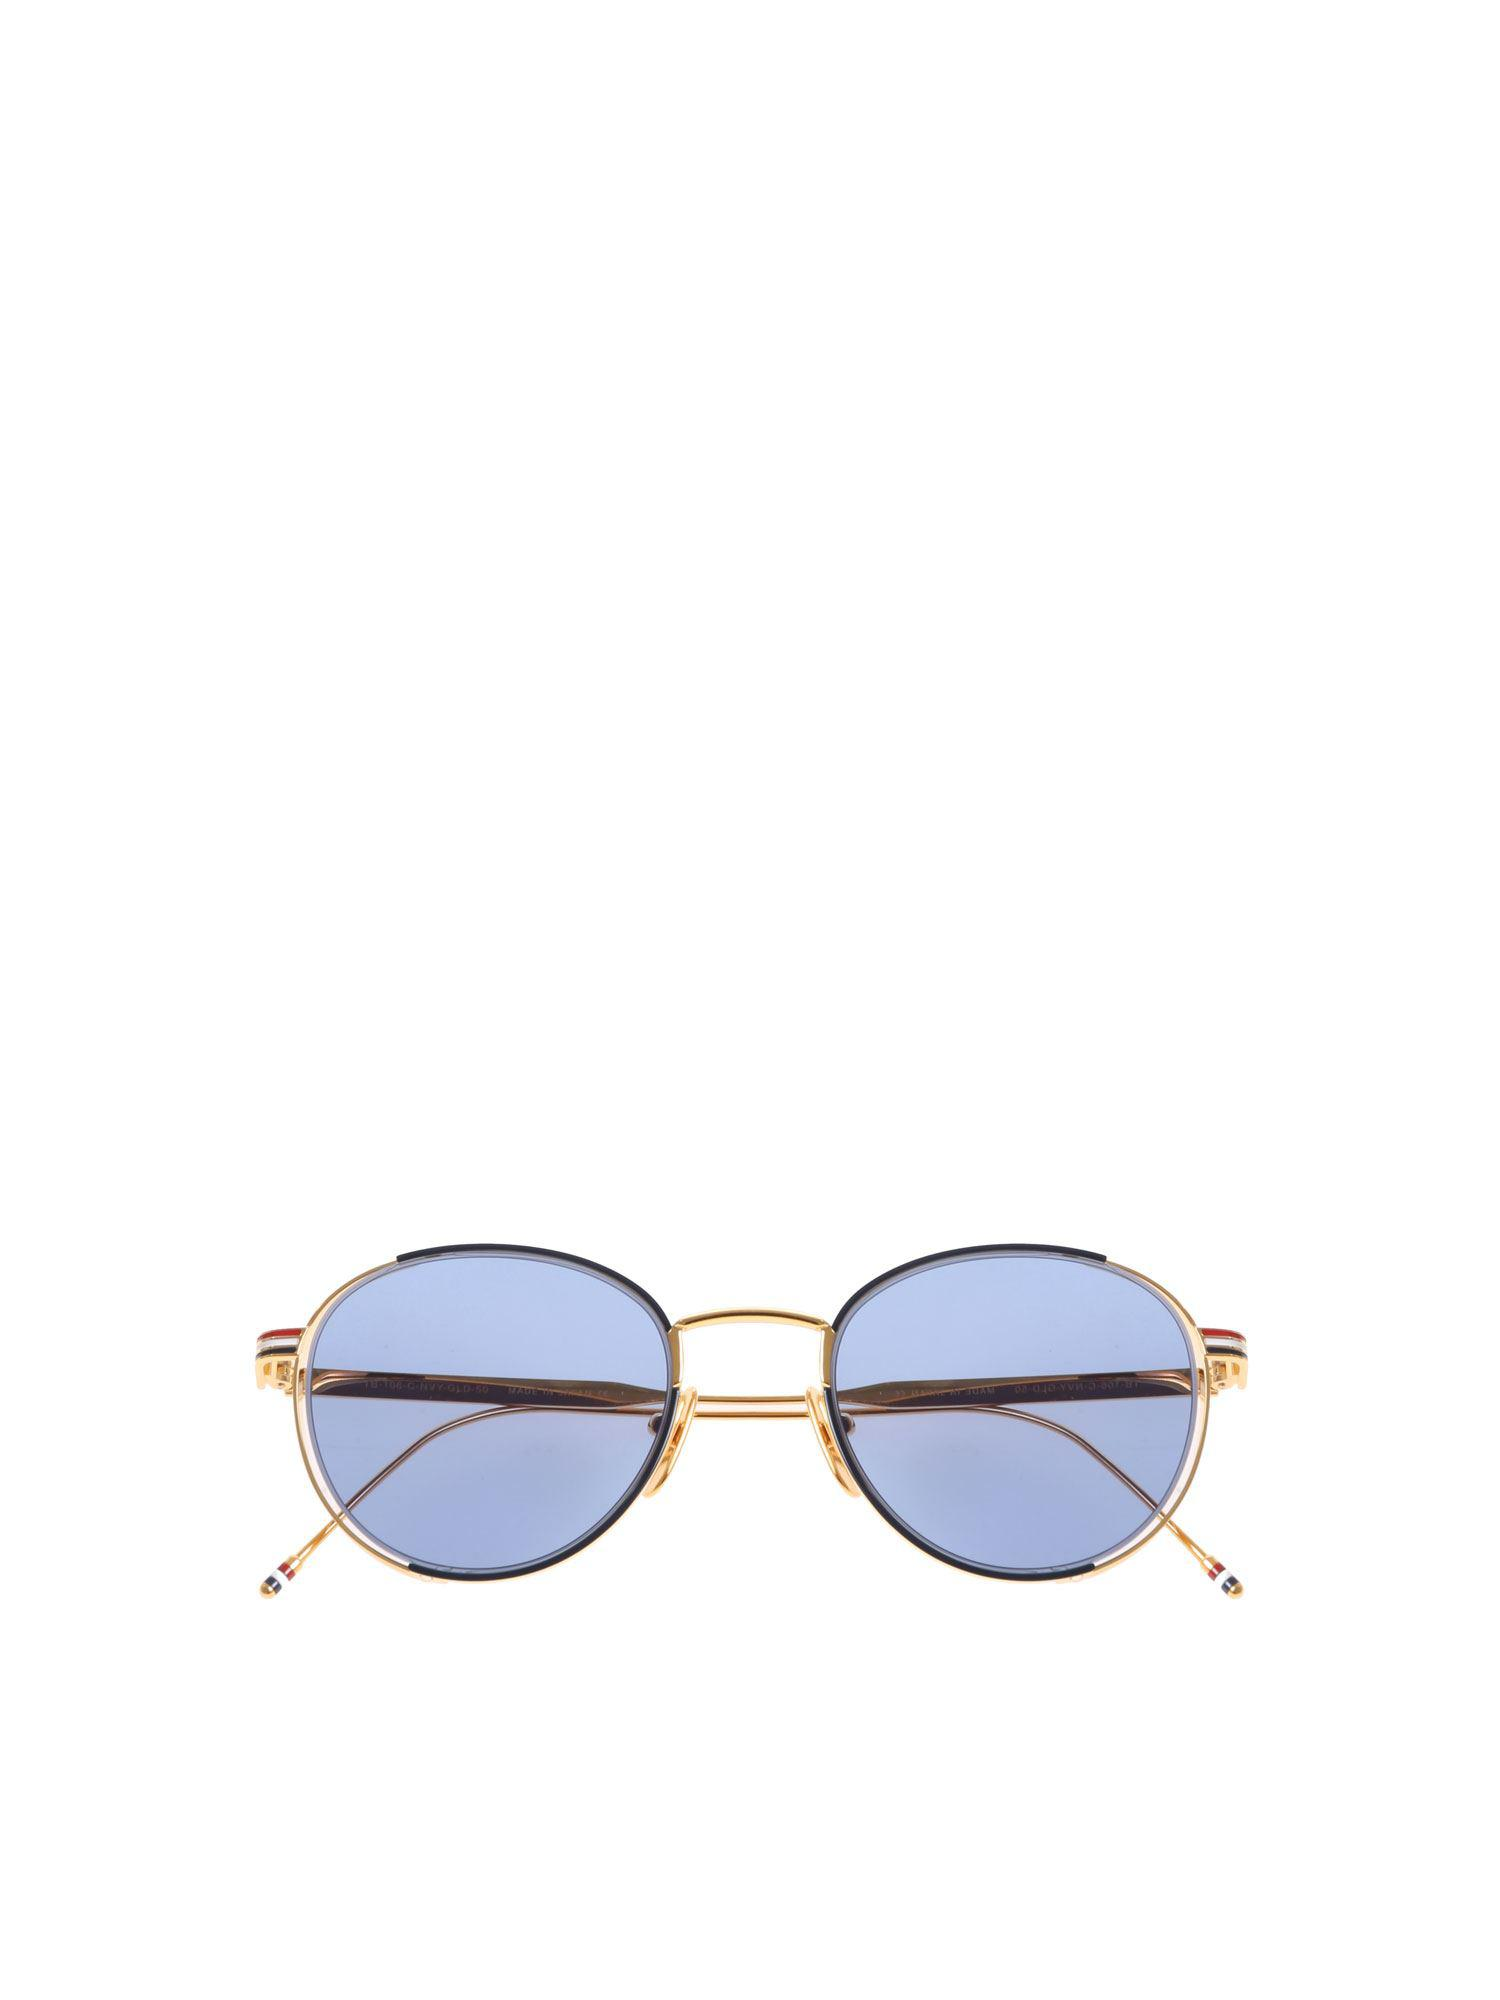 42bed8d5bf2 Thom Browne Golden Sunglasses With Blue Lens in Blue - Lyst